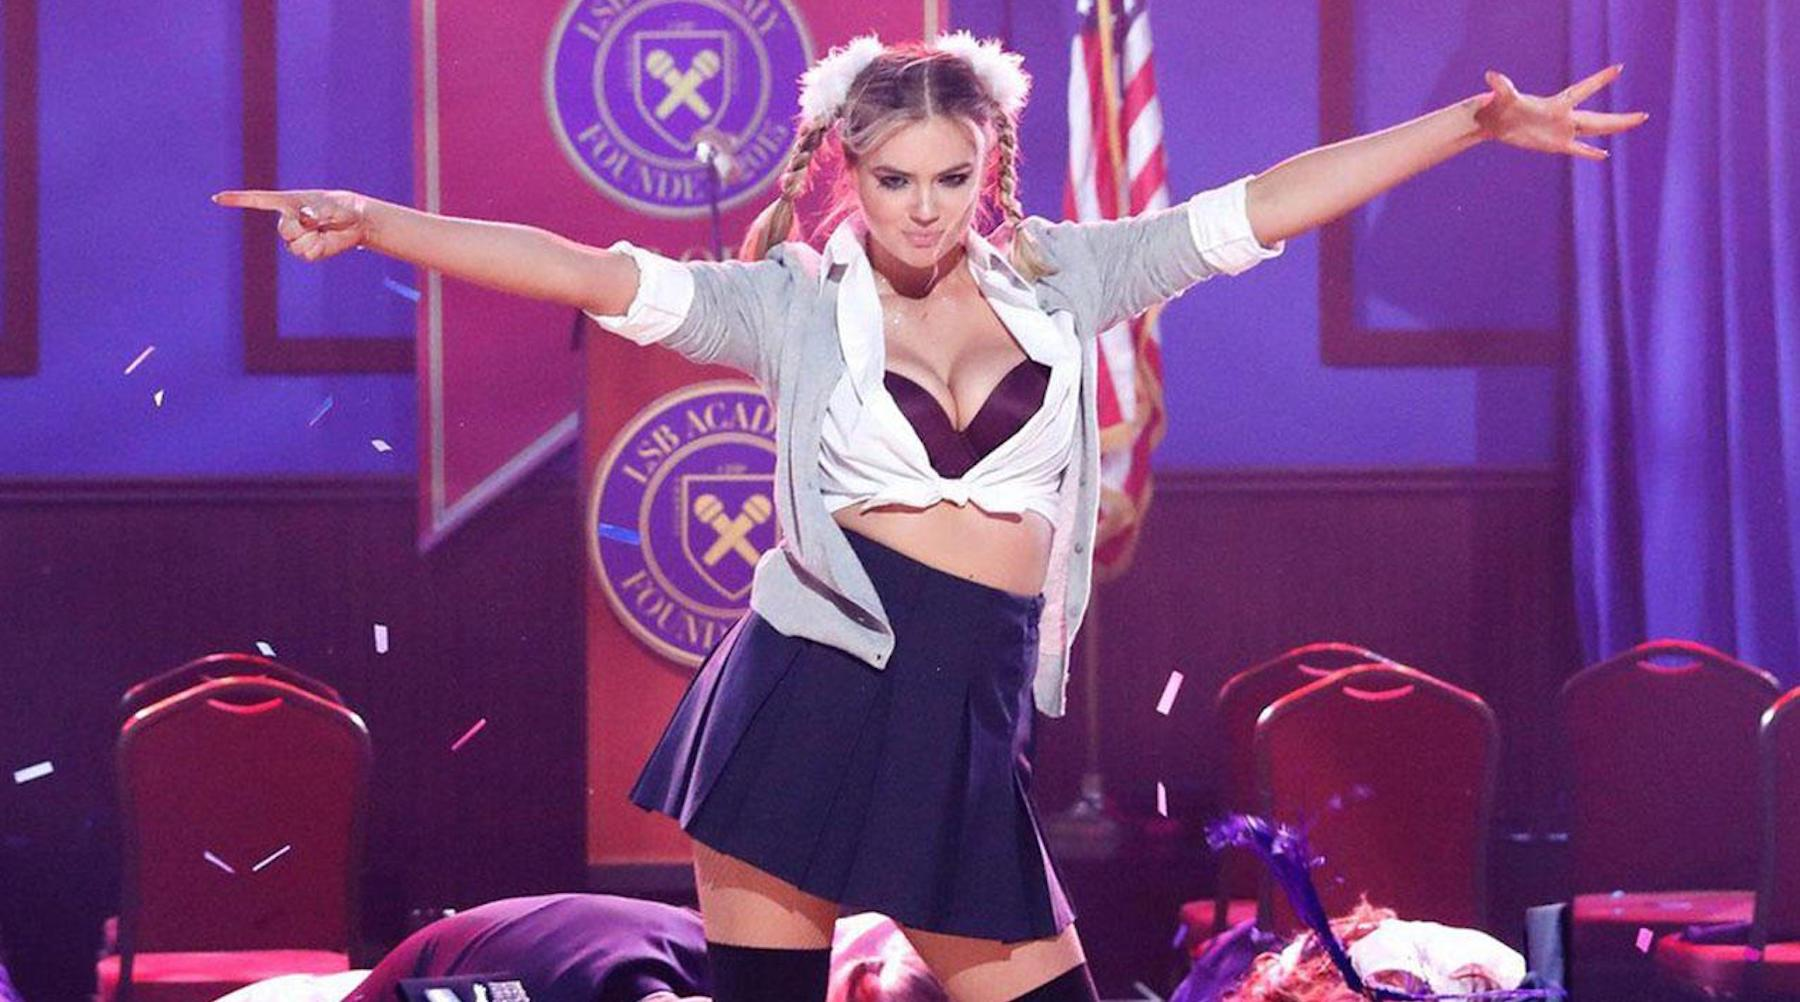 Kate Upton as Britney Spears